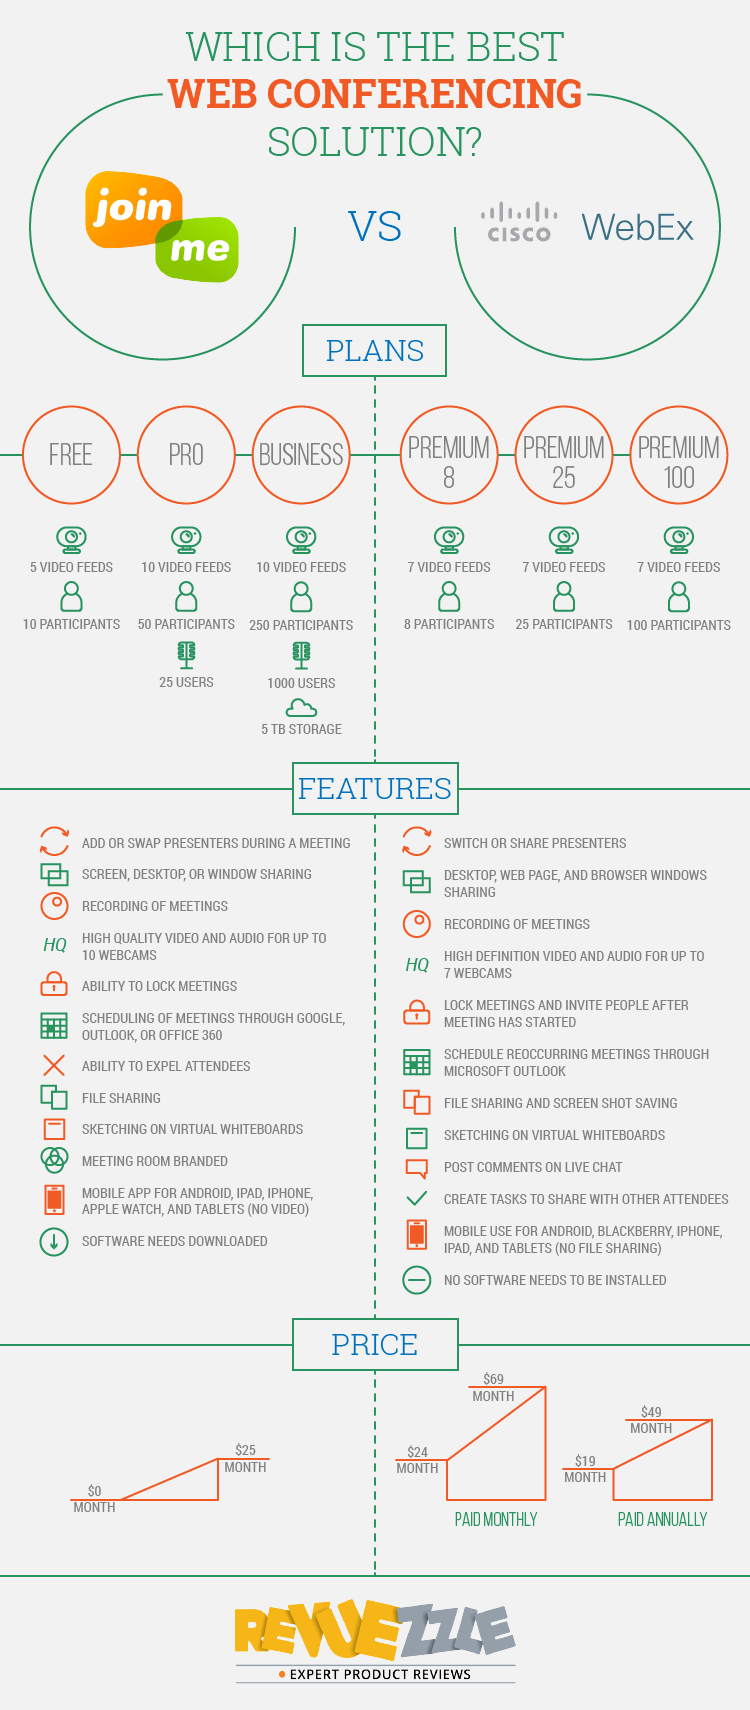 WebEx vs. Join.me - a detailed one on one comparison. #webconferencing #webex #join.me #smallbusiness #infographic